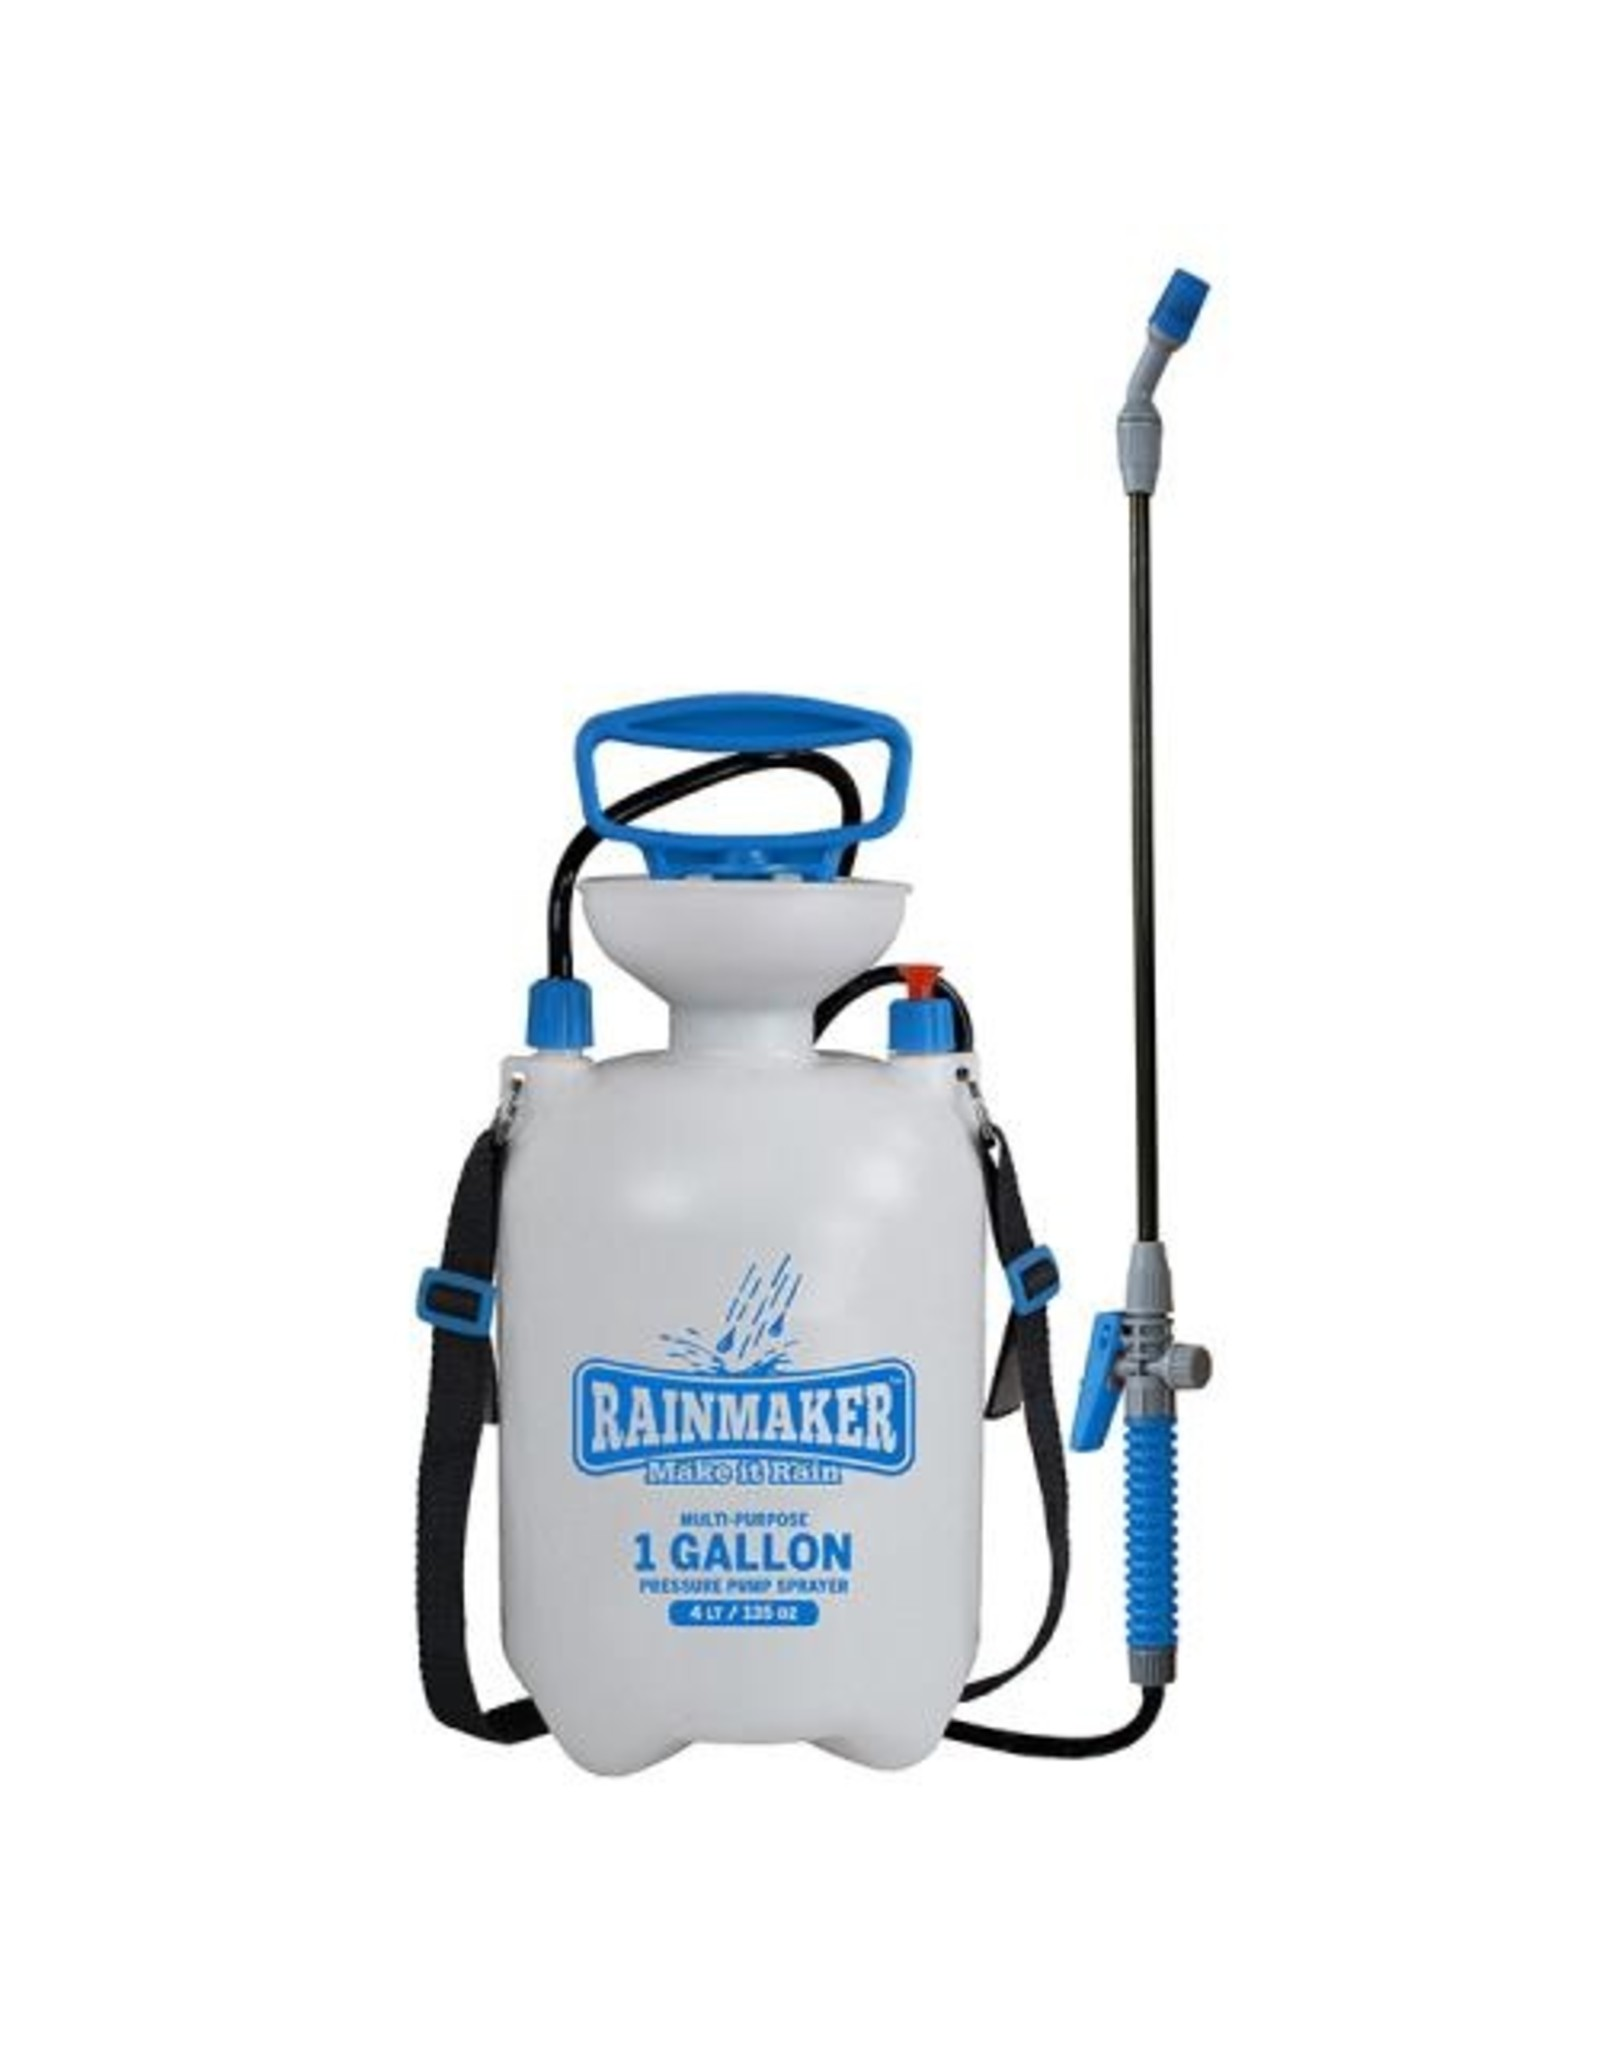 Rainmaker Pump Sprayer 1 Gallon (4 Liter)